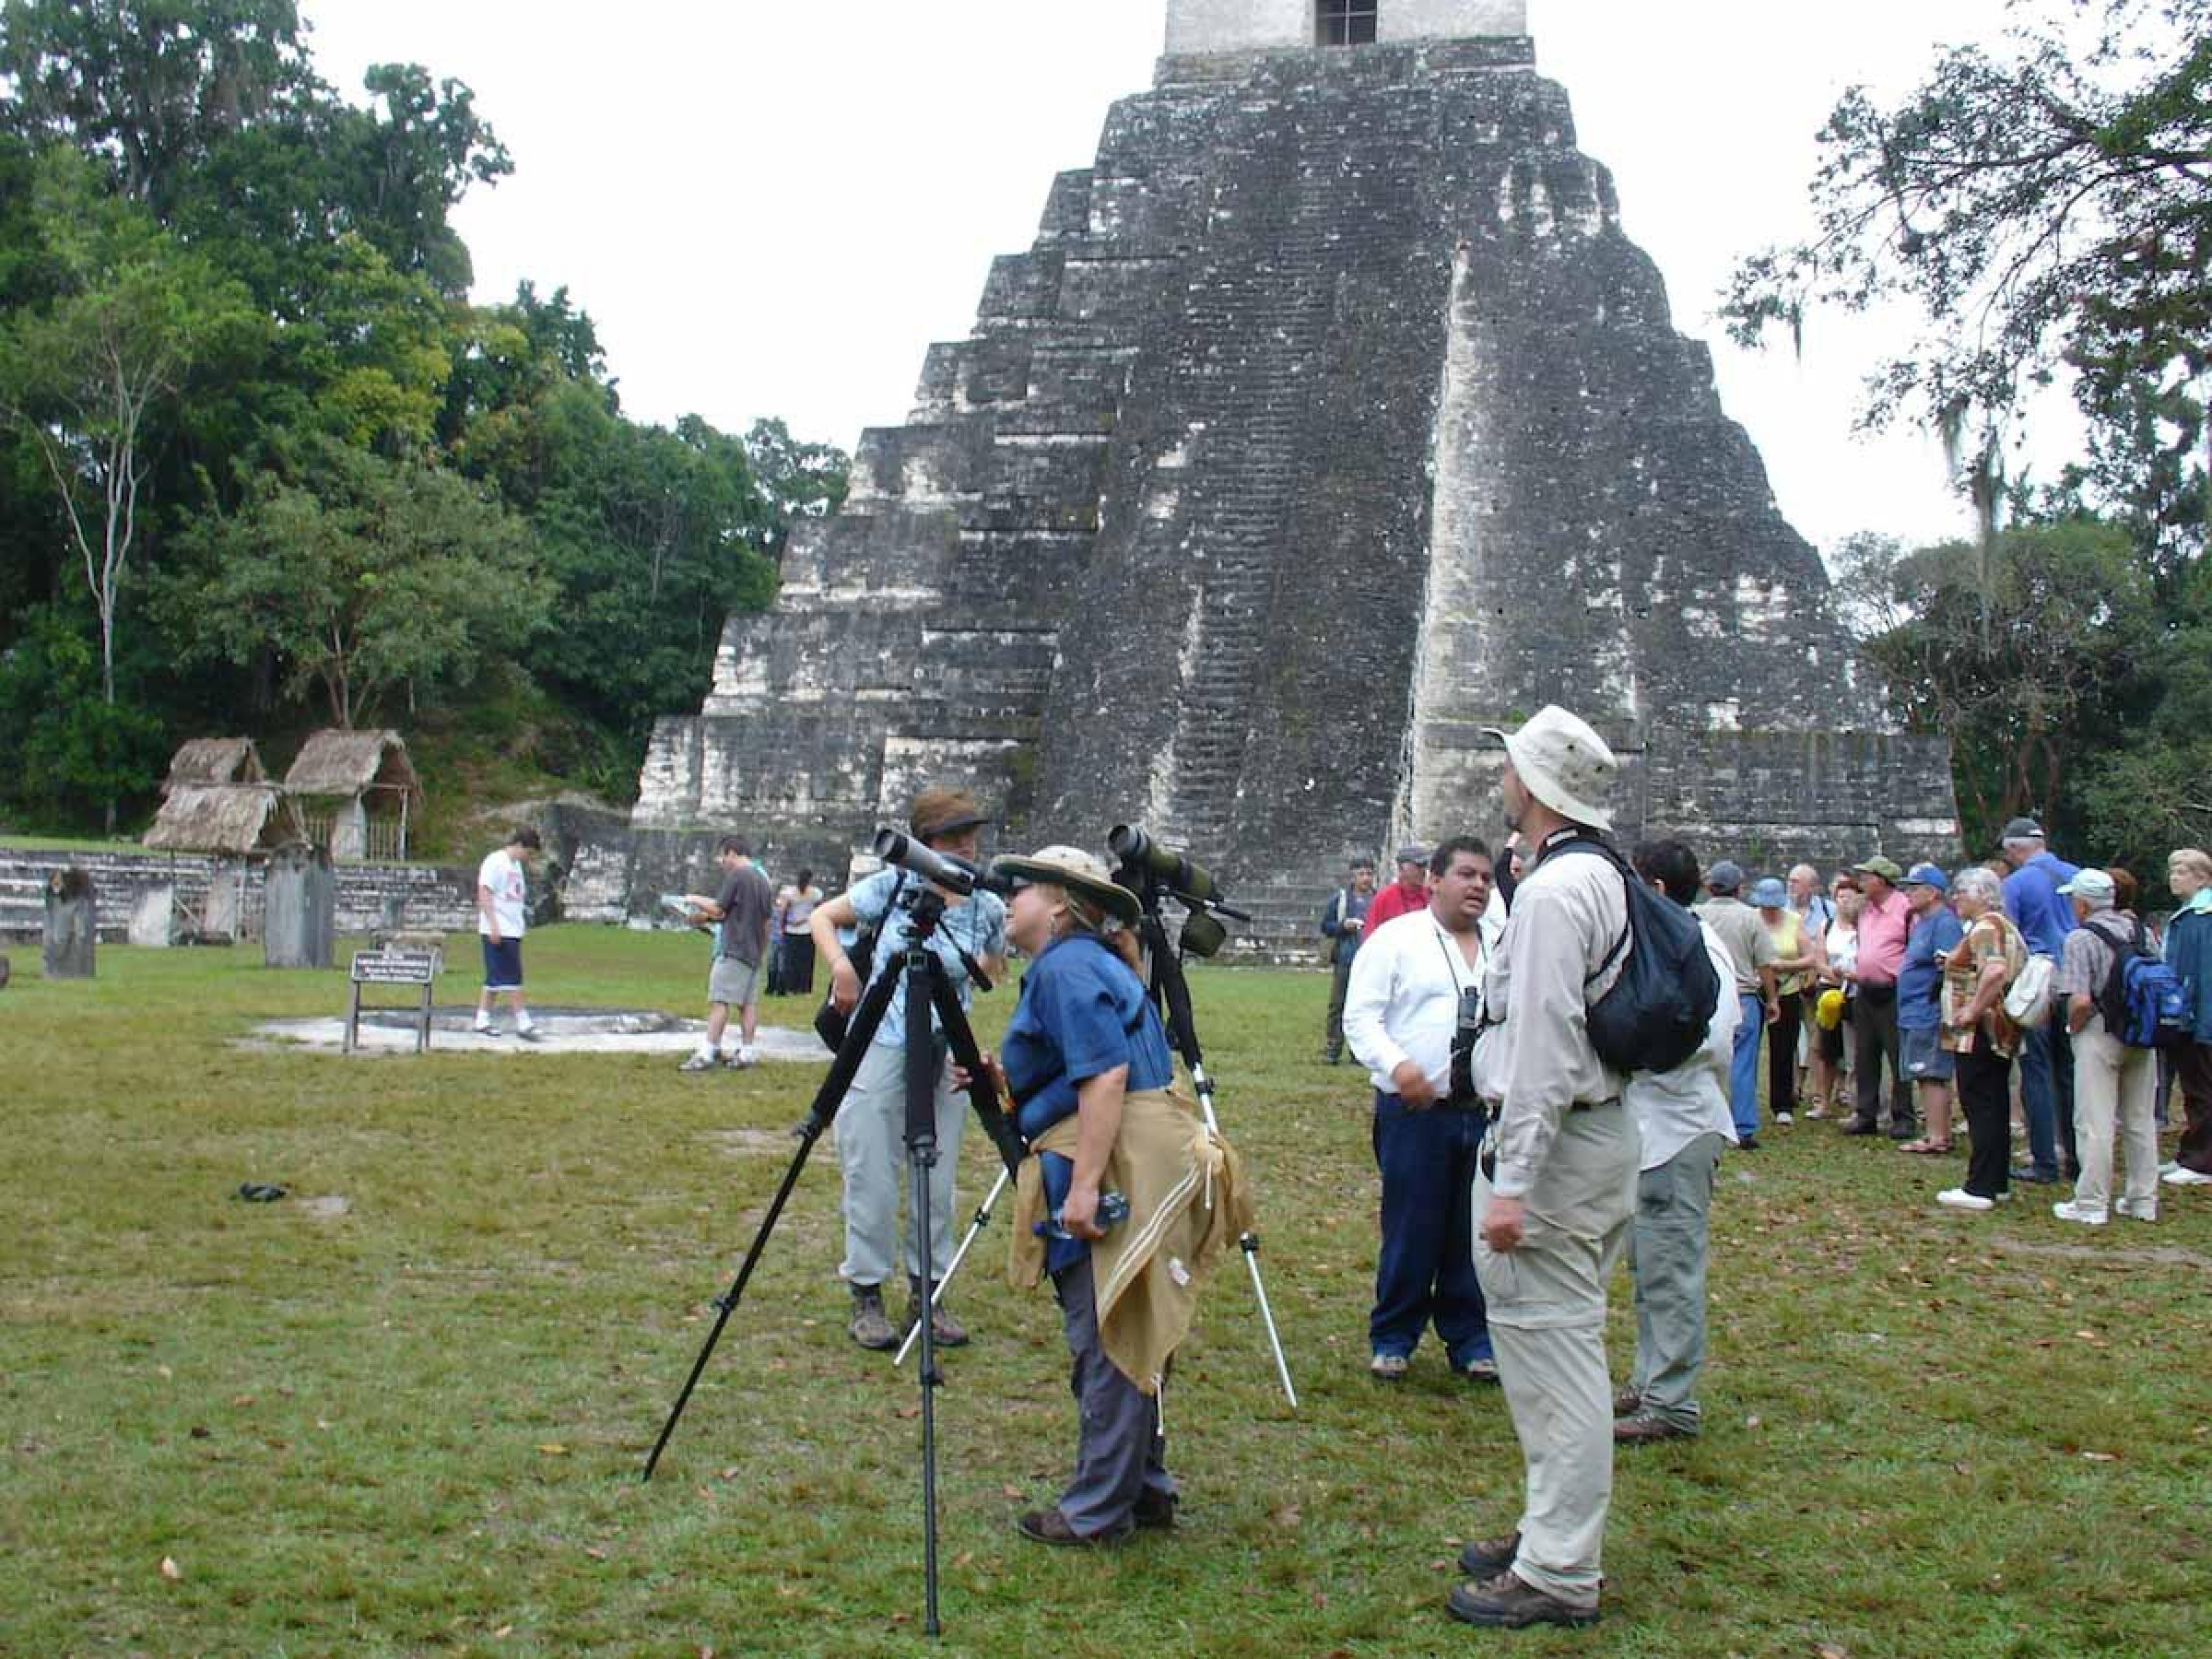 Birding Tour at Tikal